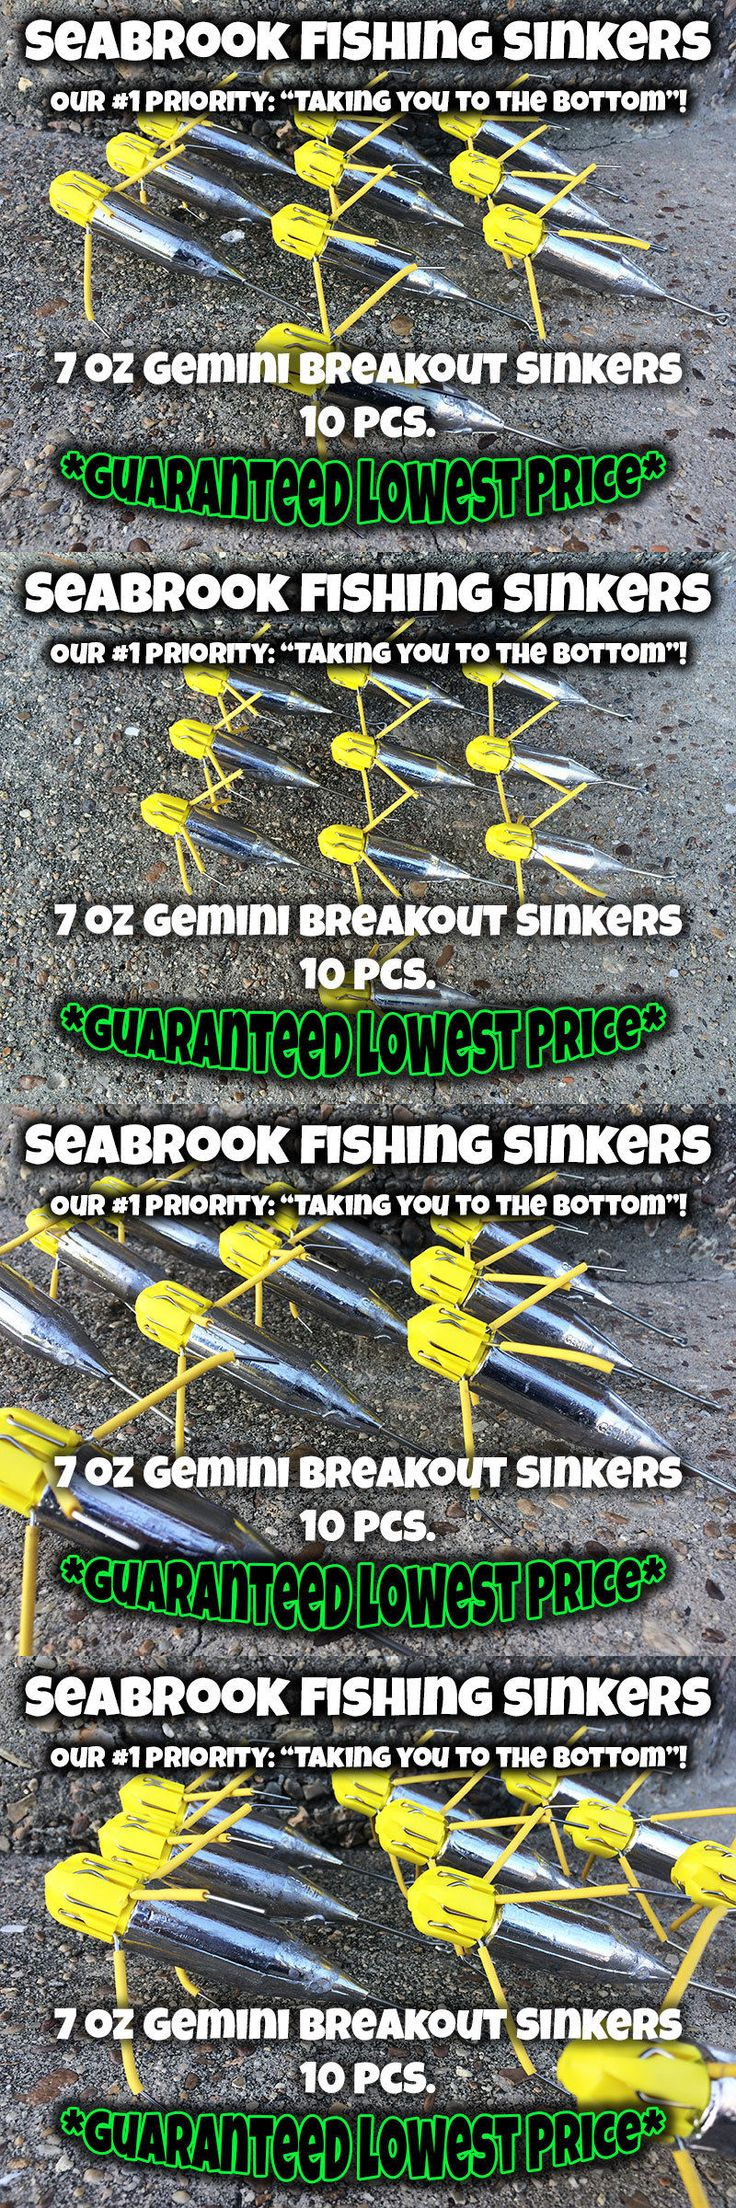 Sinkers and Weights 161826: 7 Oz - 10 Pcs   Gemini Breakout Sinkers   Surf Sputnik Sinker Spider Weights BUY IT NOW ONLY: $33.99